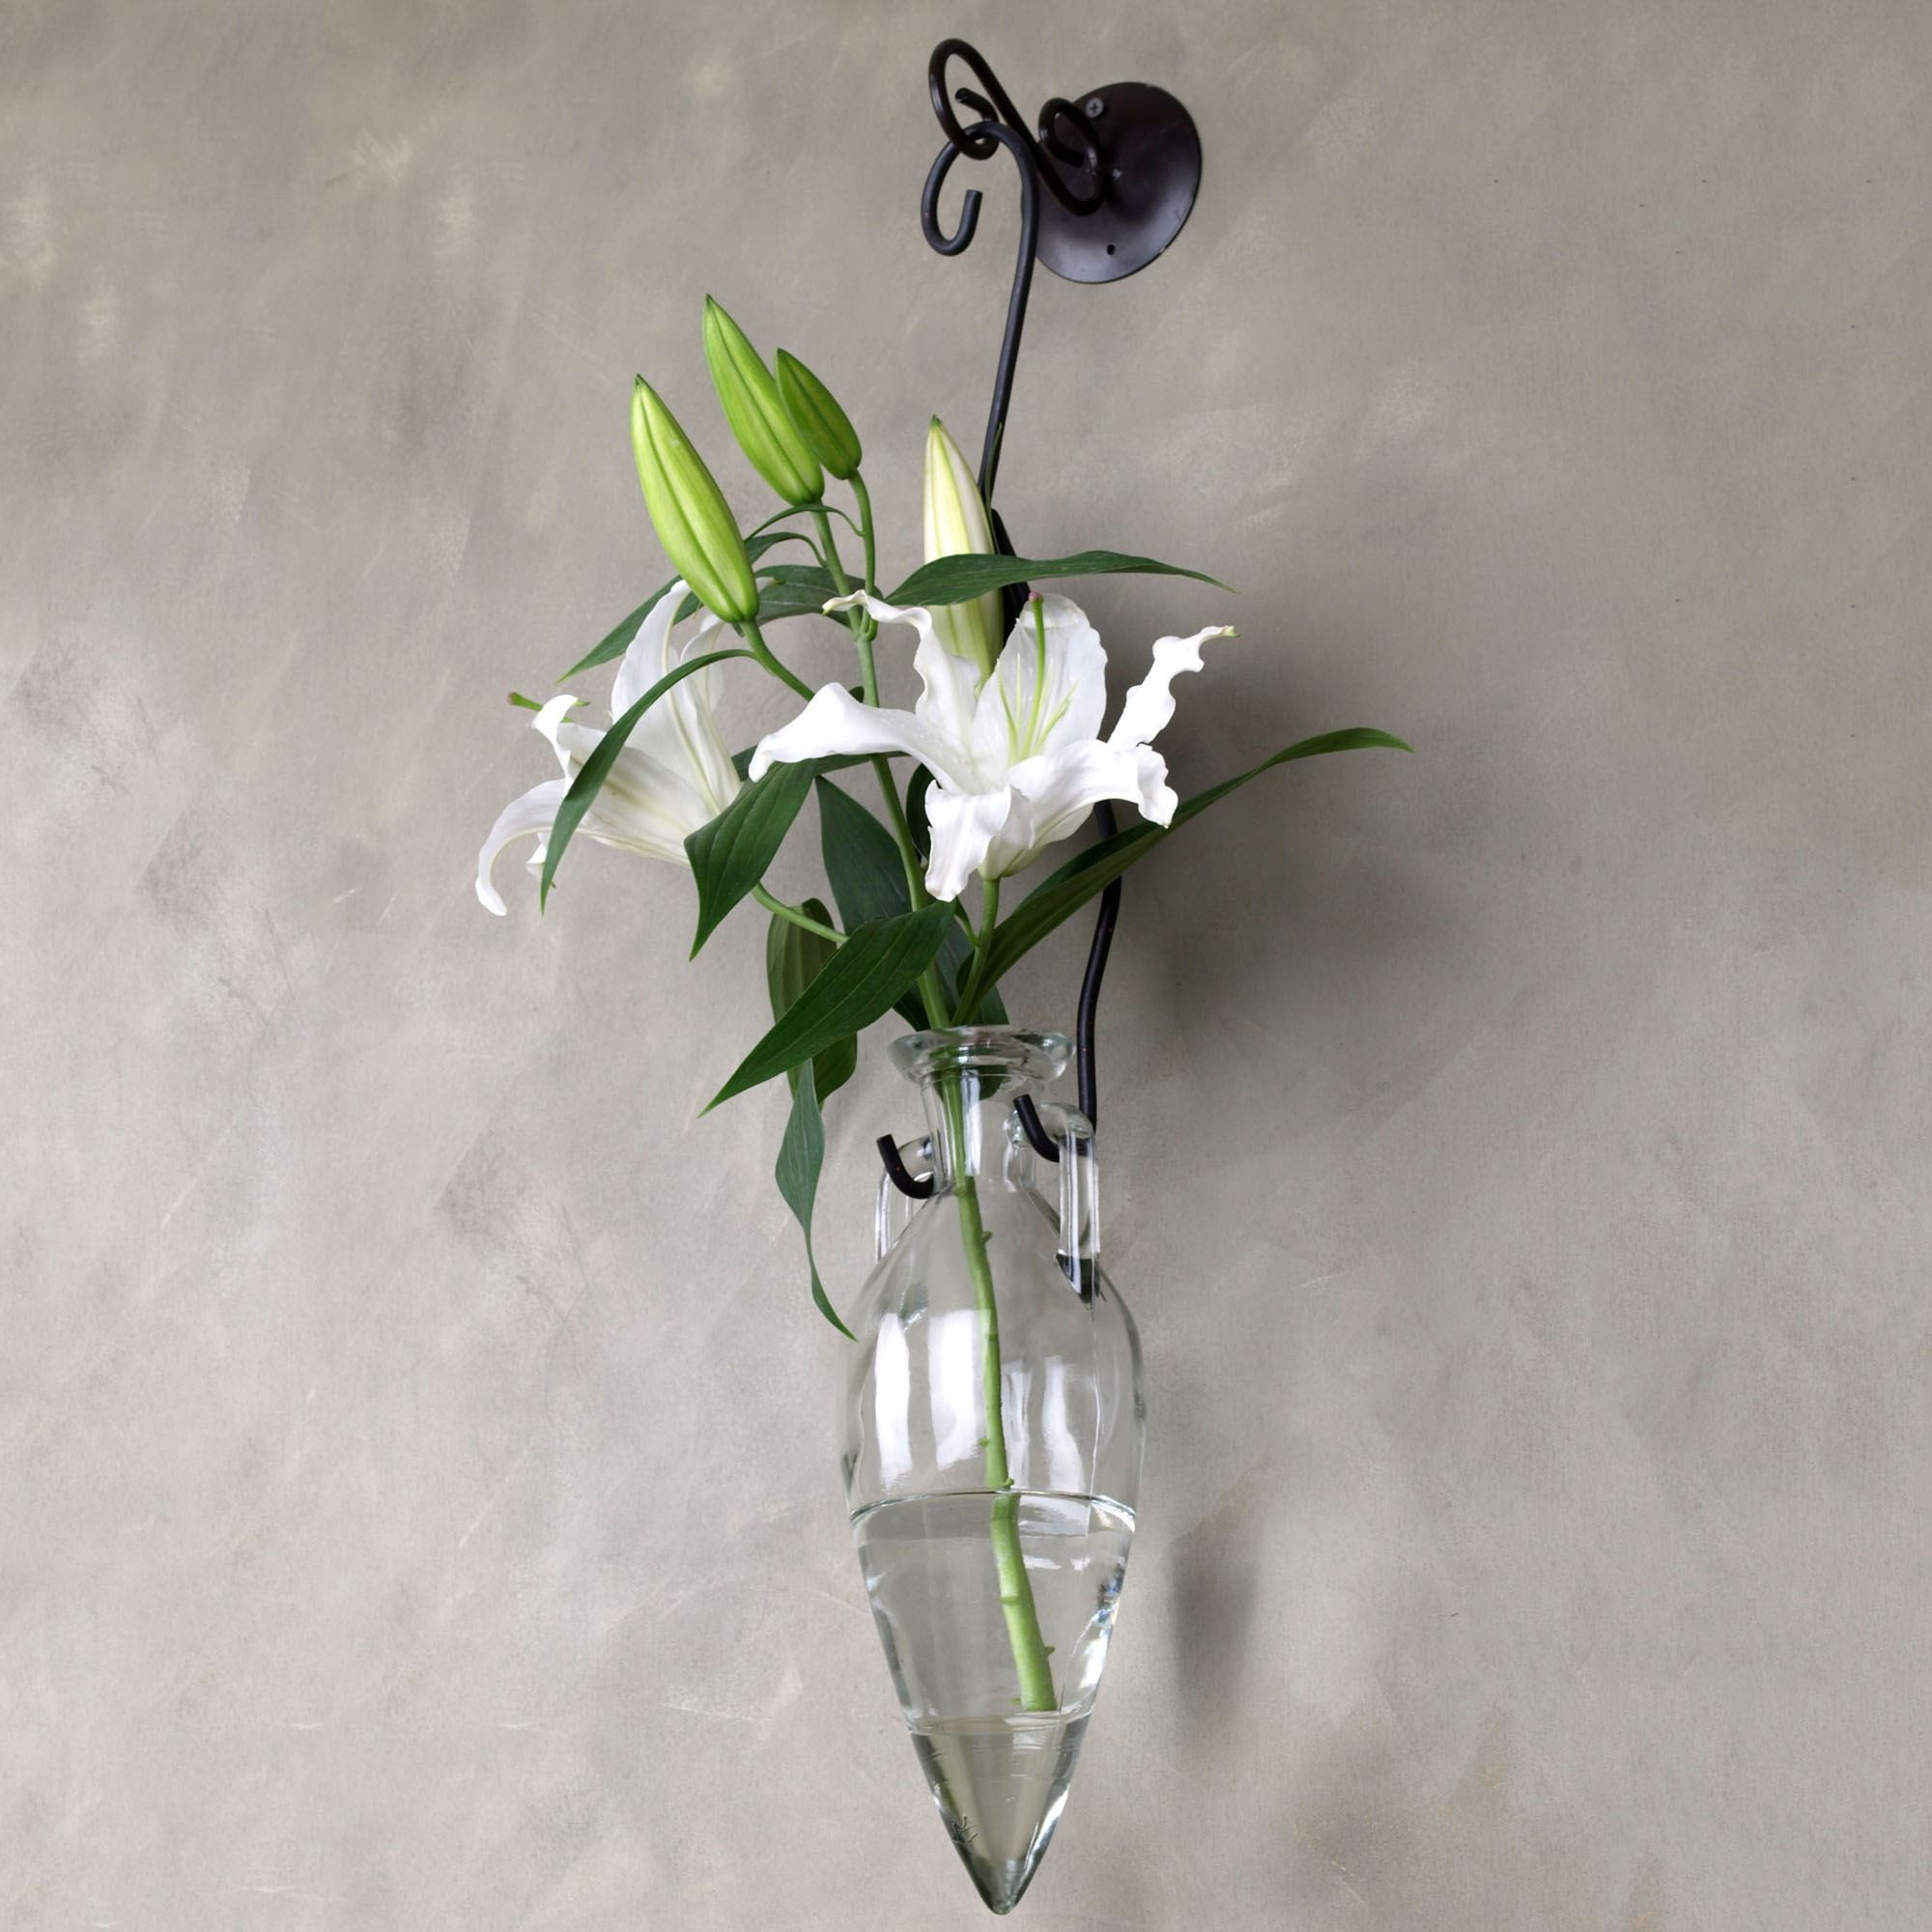 wine bottle vase of wall vase holder collection flower holder lovely h vases wall within flower holder lovely h vases wall hanging flower vase